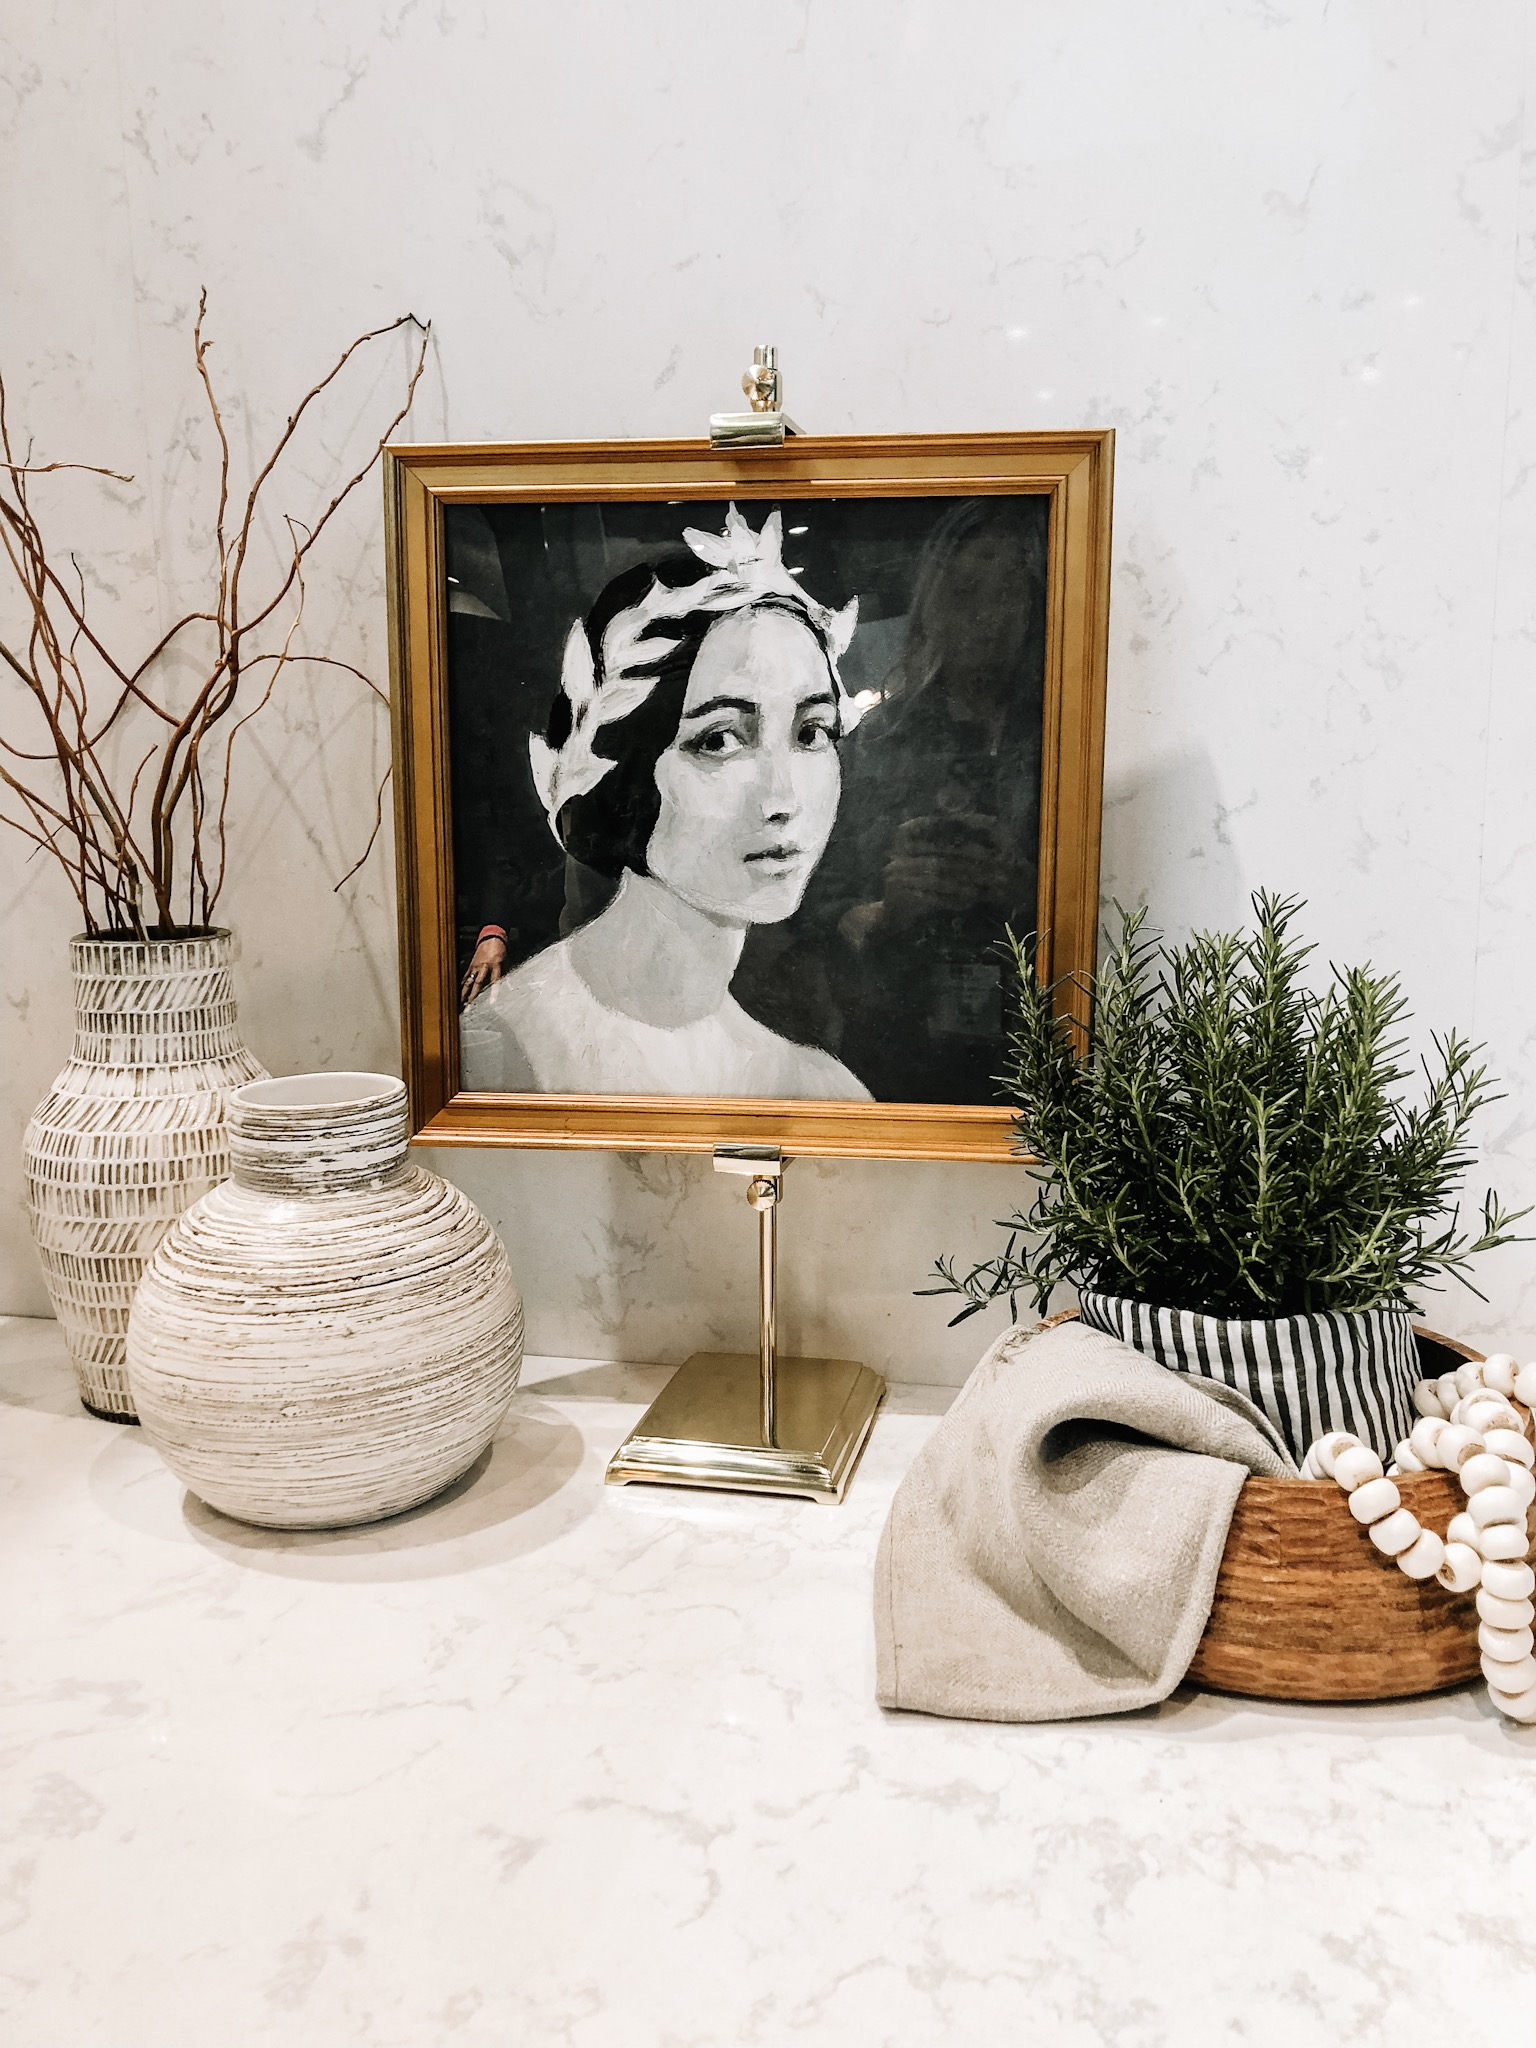 The Top 5 Kitchen and Bath Trends for 2019 and How To Get Them On a Budget - Layered Antiques